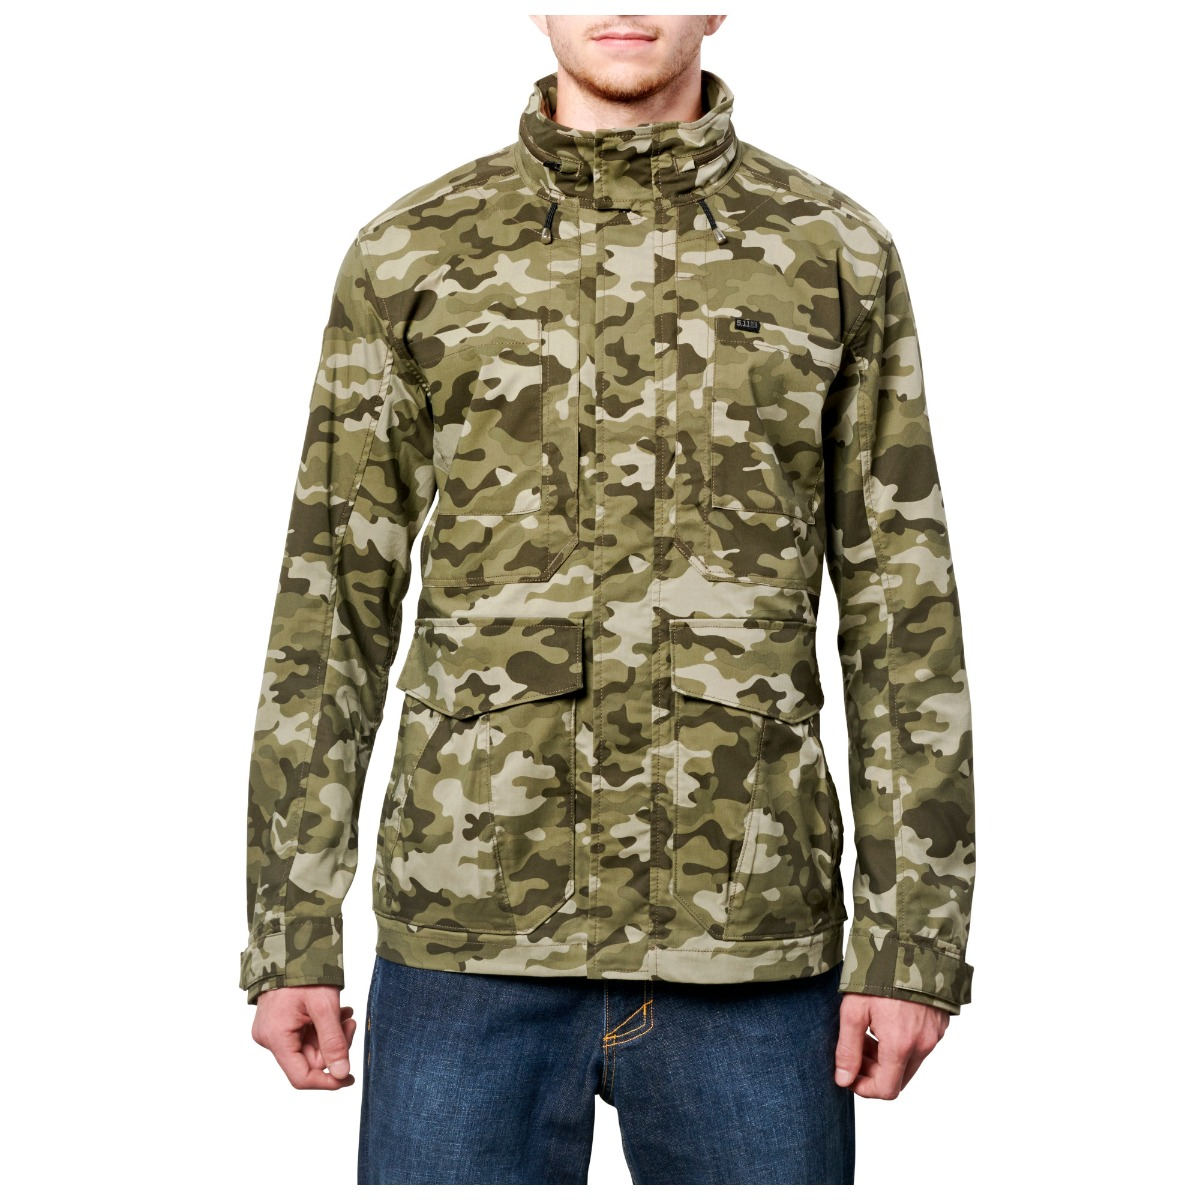 5.11 Tactical Men Surplus Camo Jacket